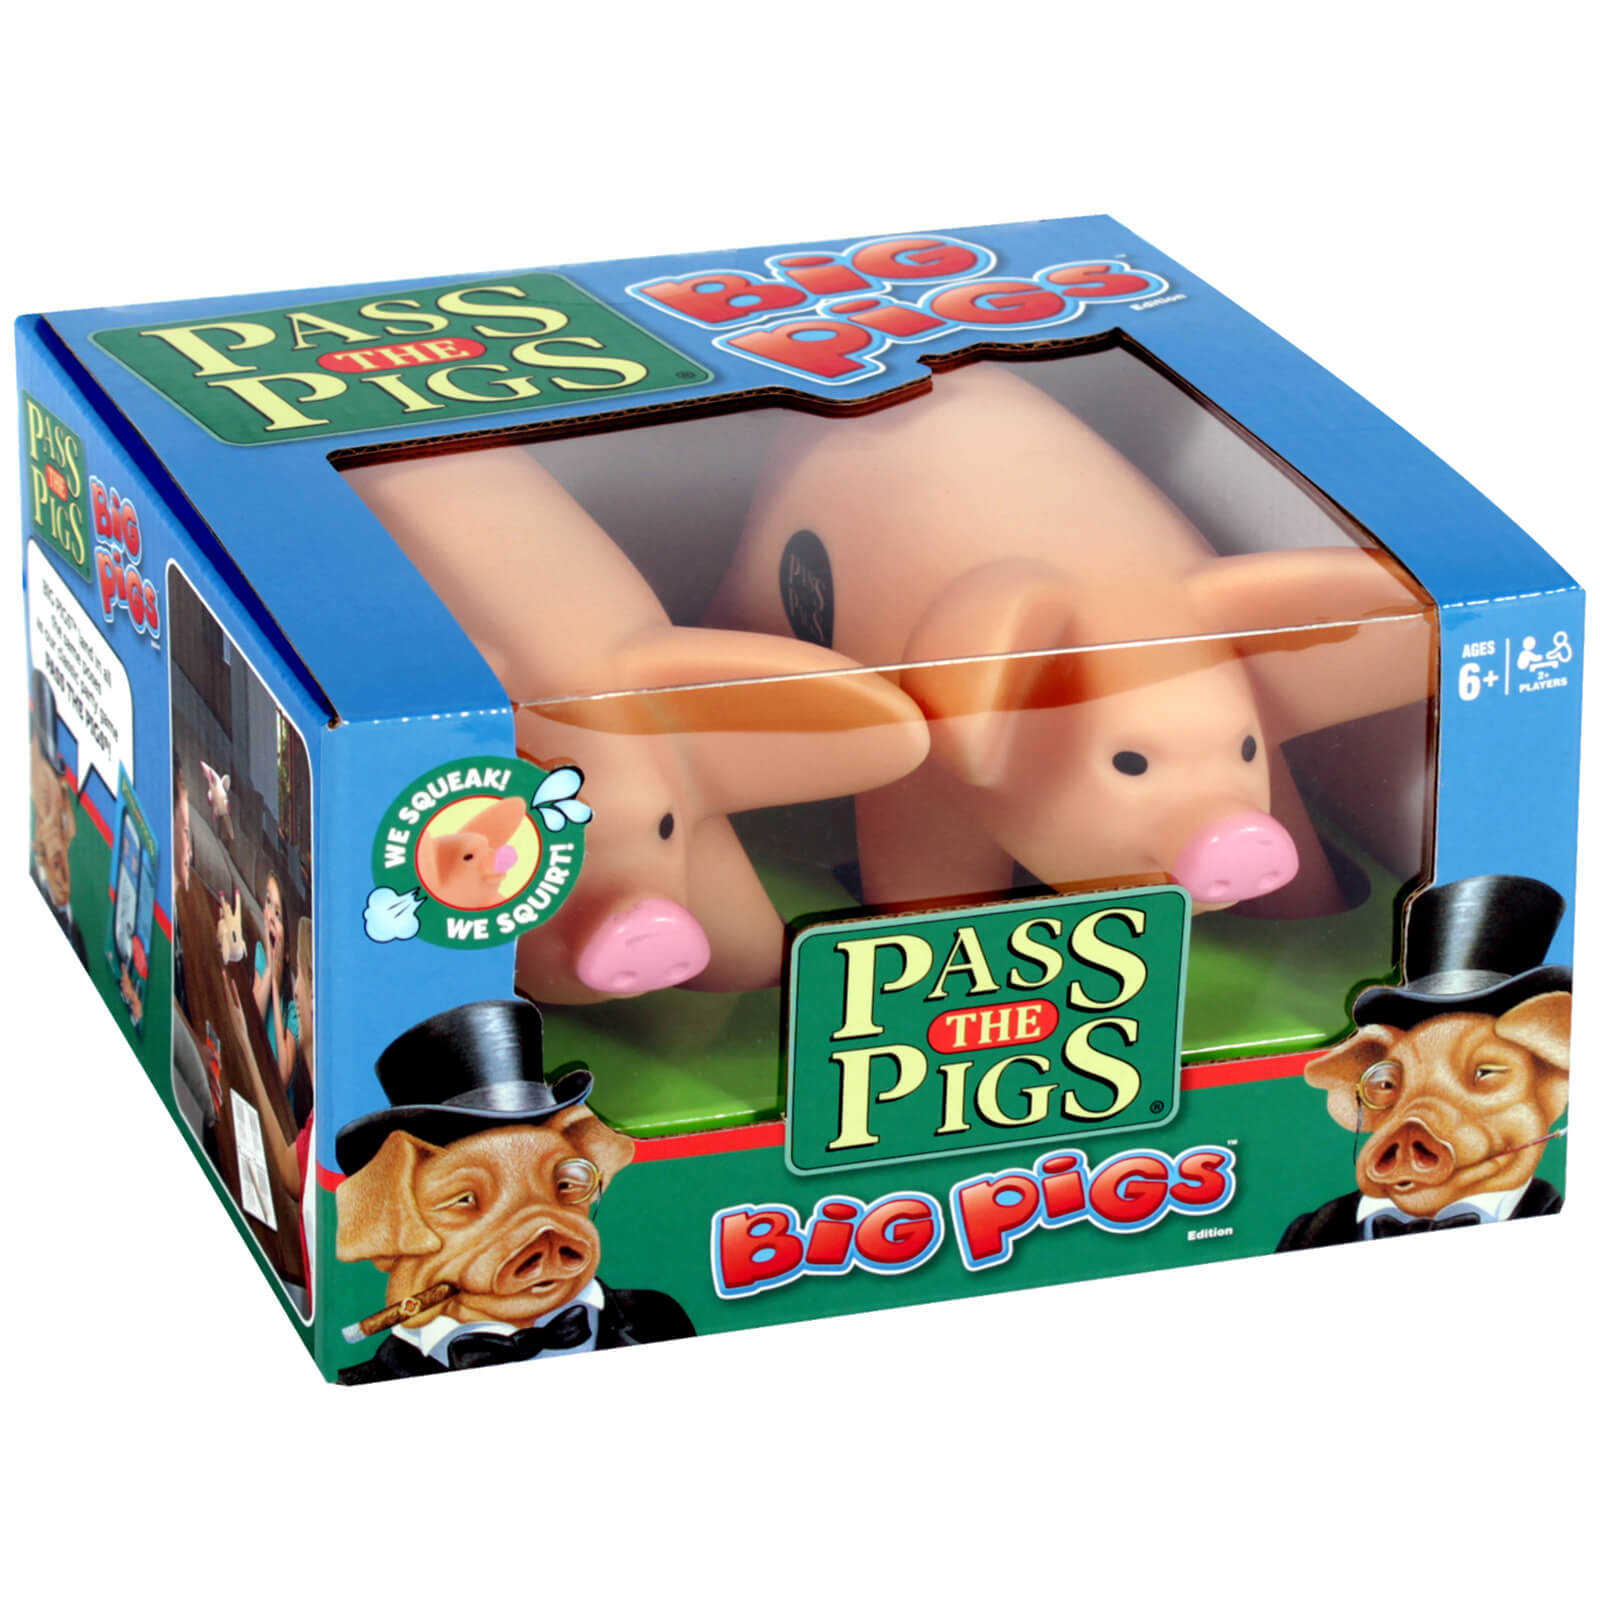 Image of Pass the Pigs Big Pigs Dice Game